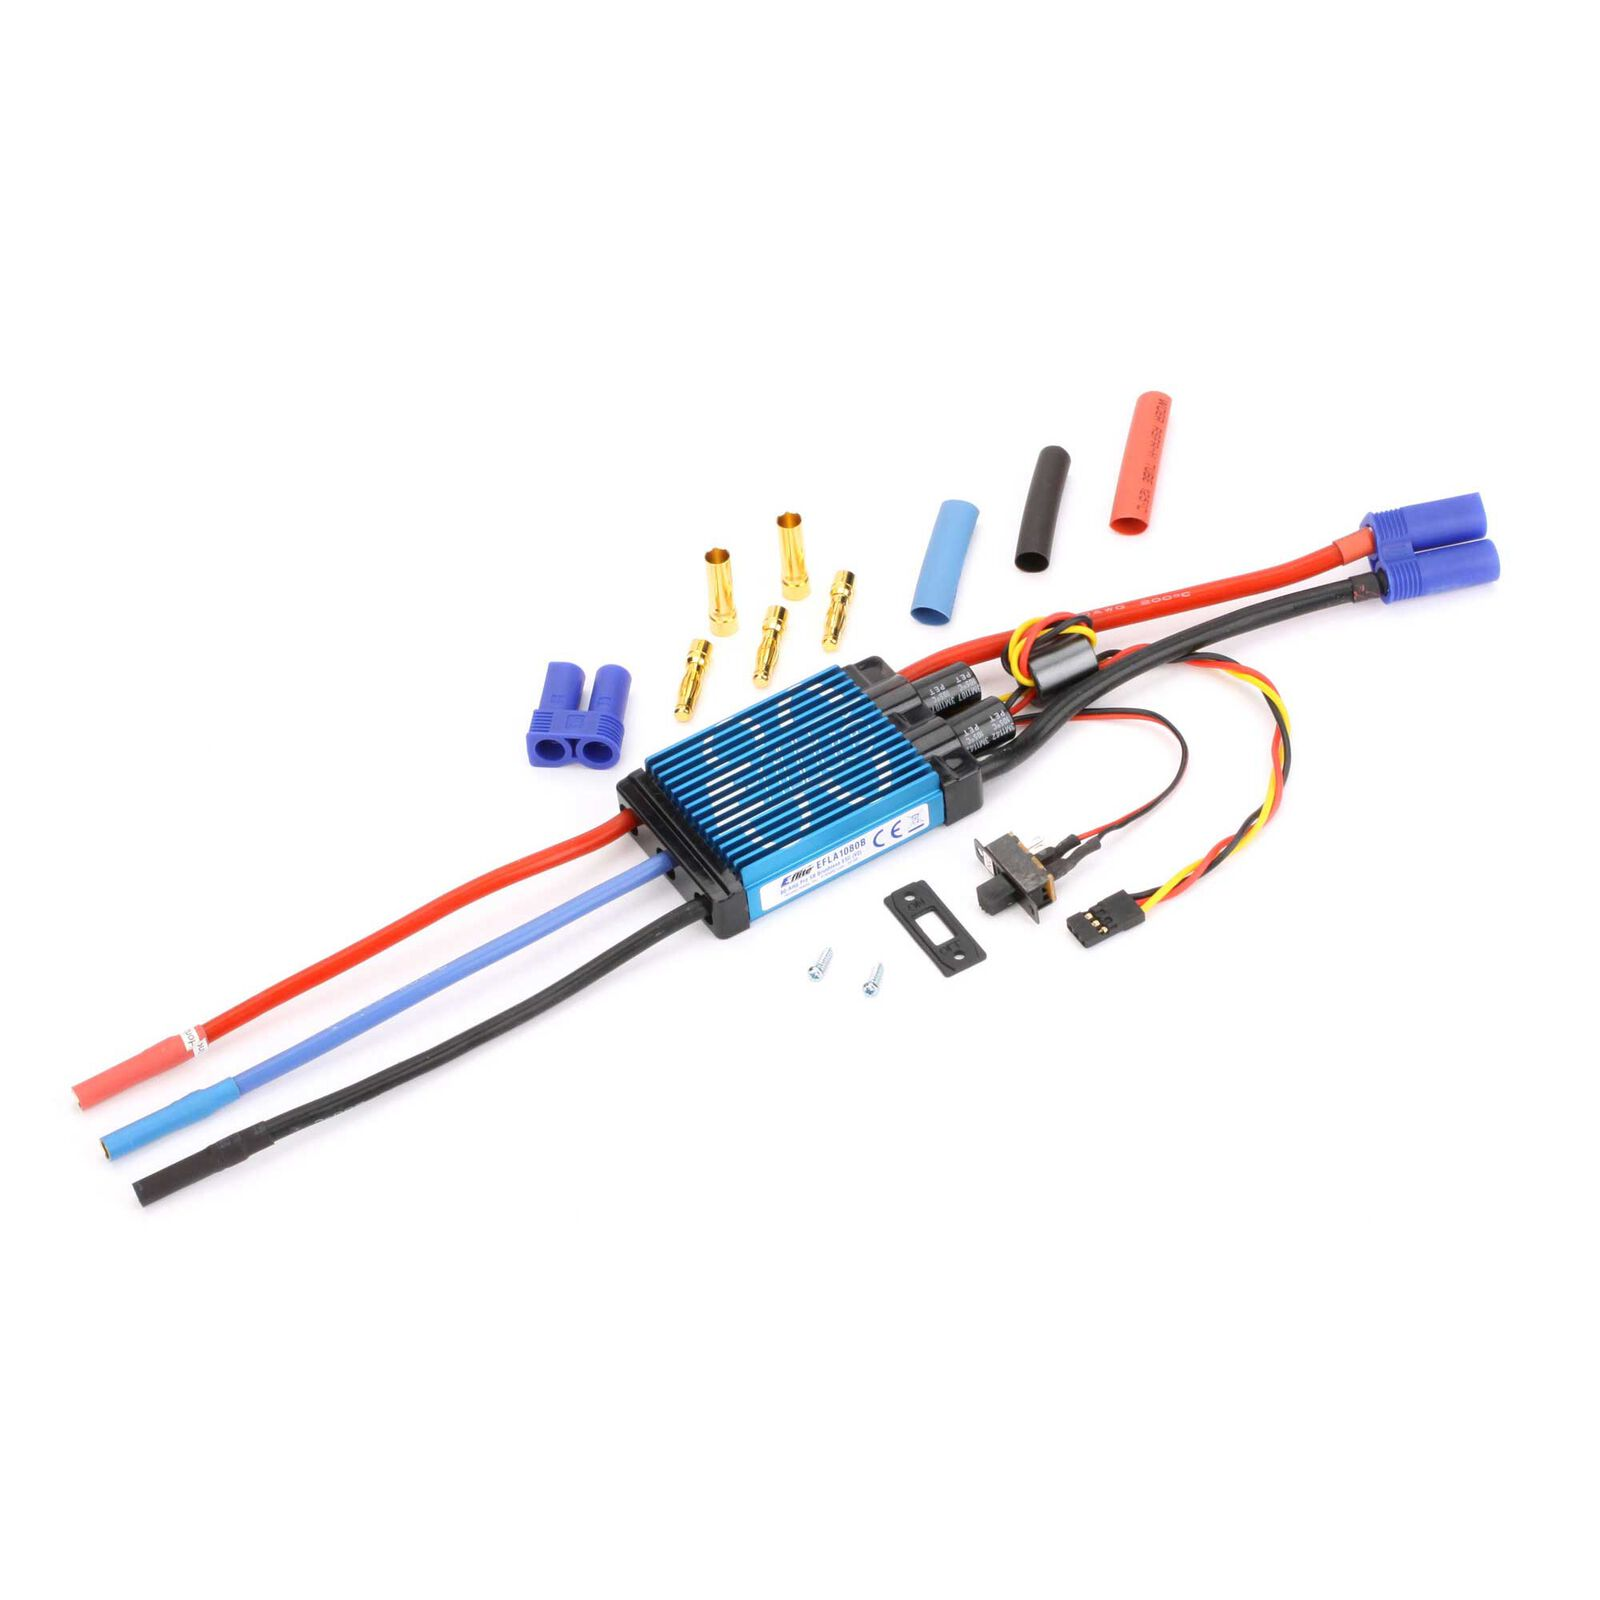 80-Amp Pro Switch-Mode BEC Brushless ESC V2: EC5